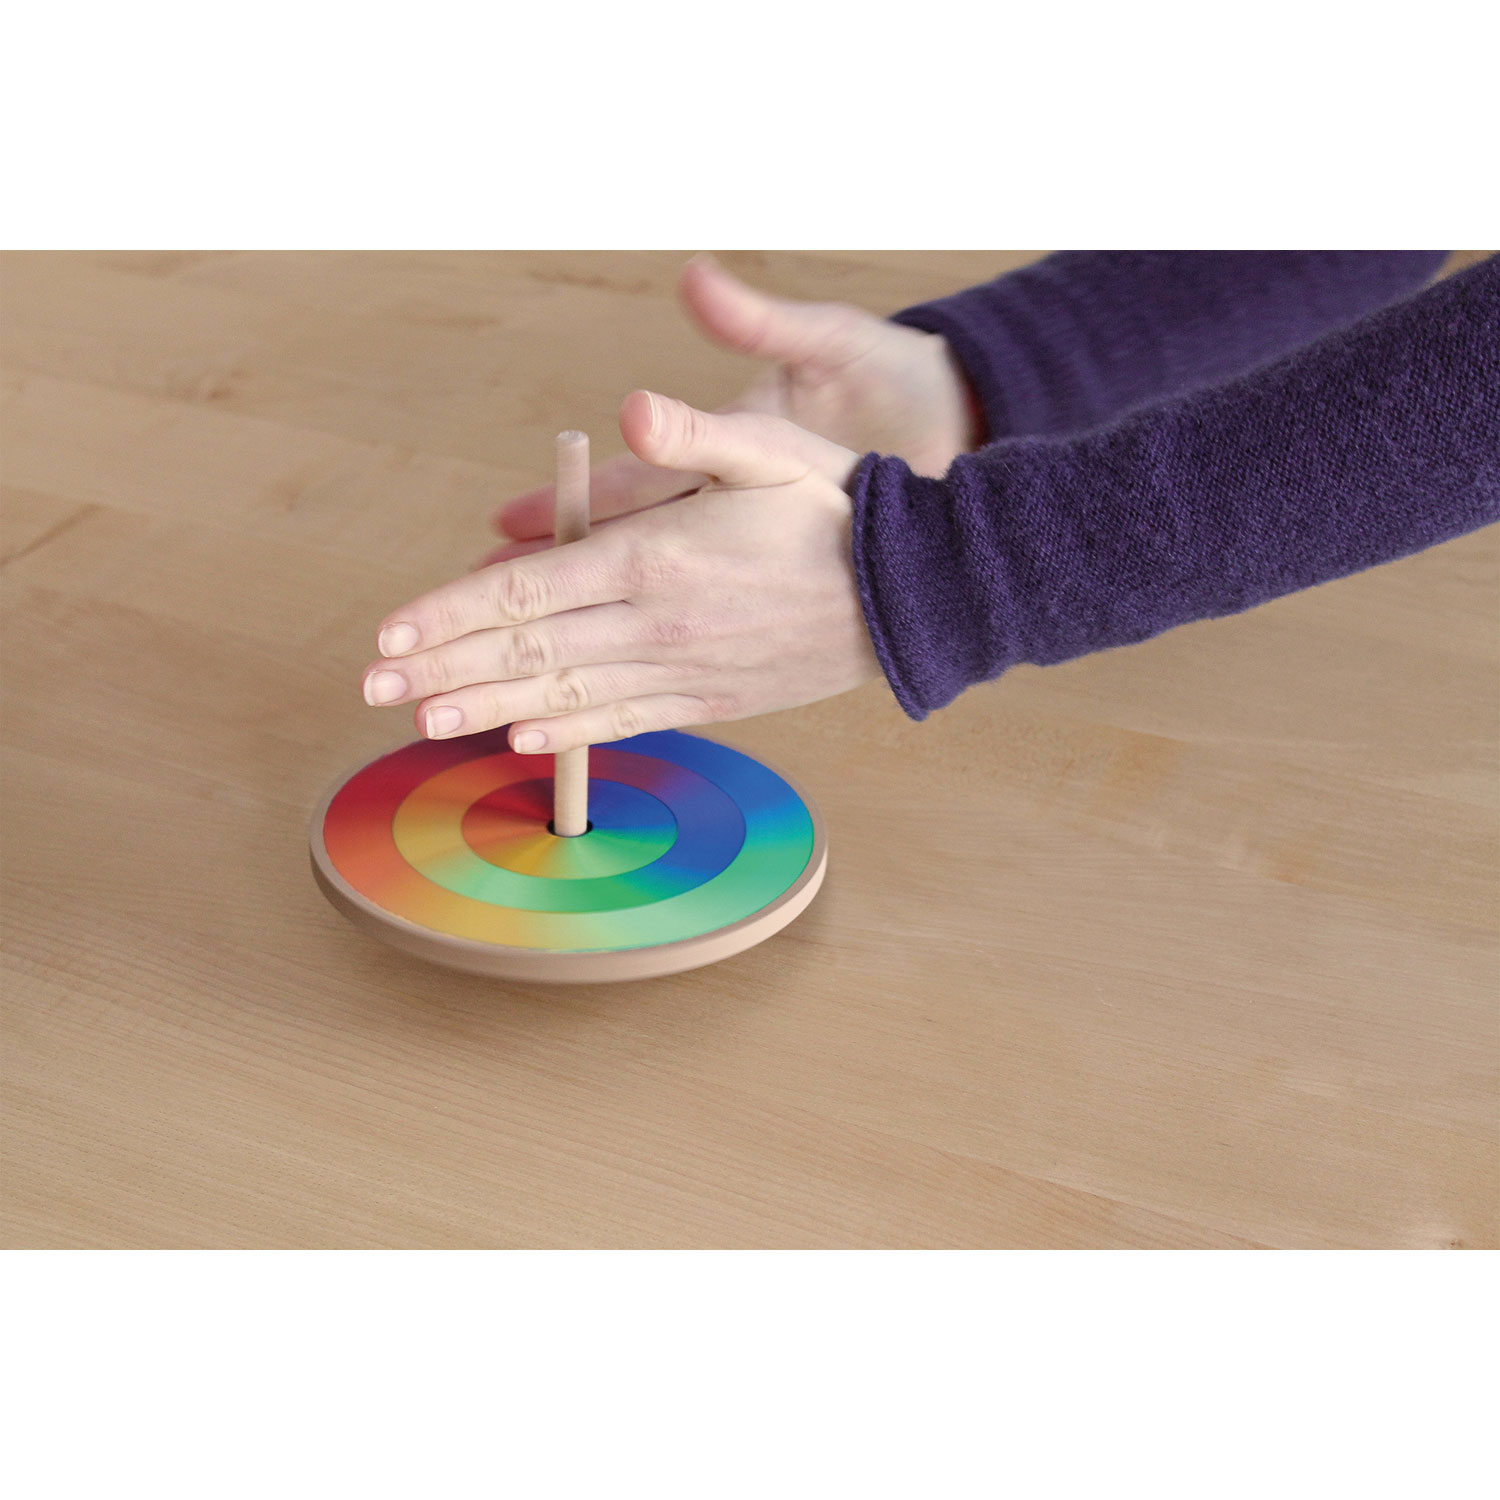 Grimm's Kit to make your own Goethe's Colour Circle Spinning Top